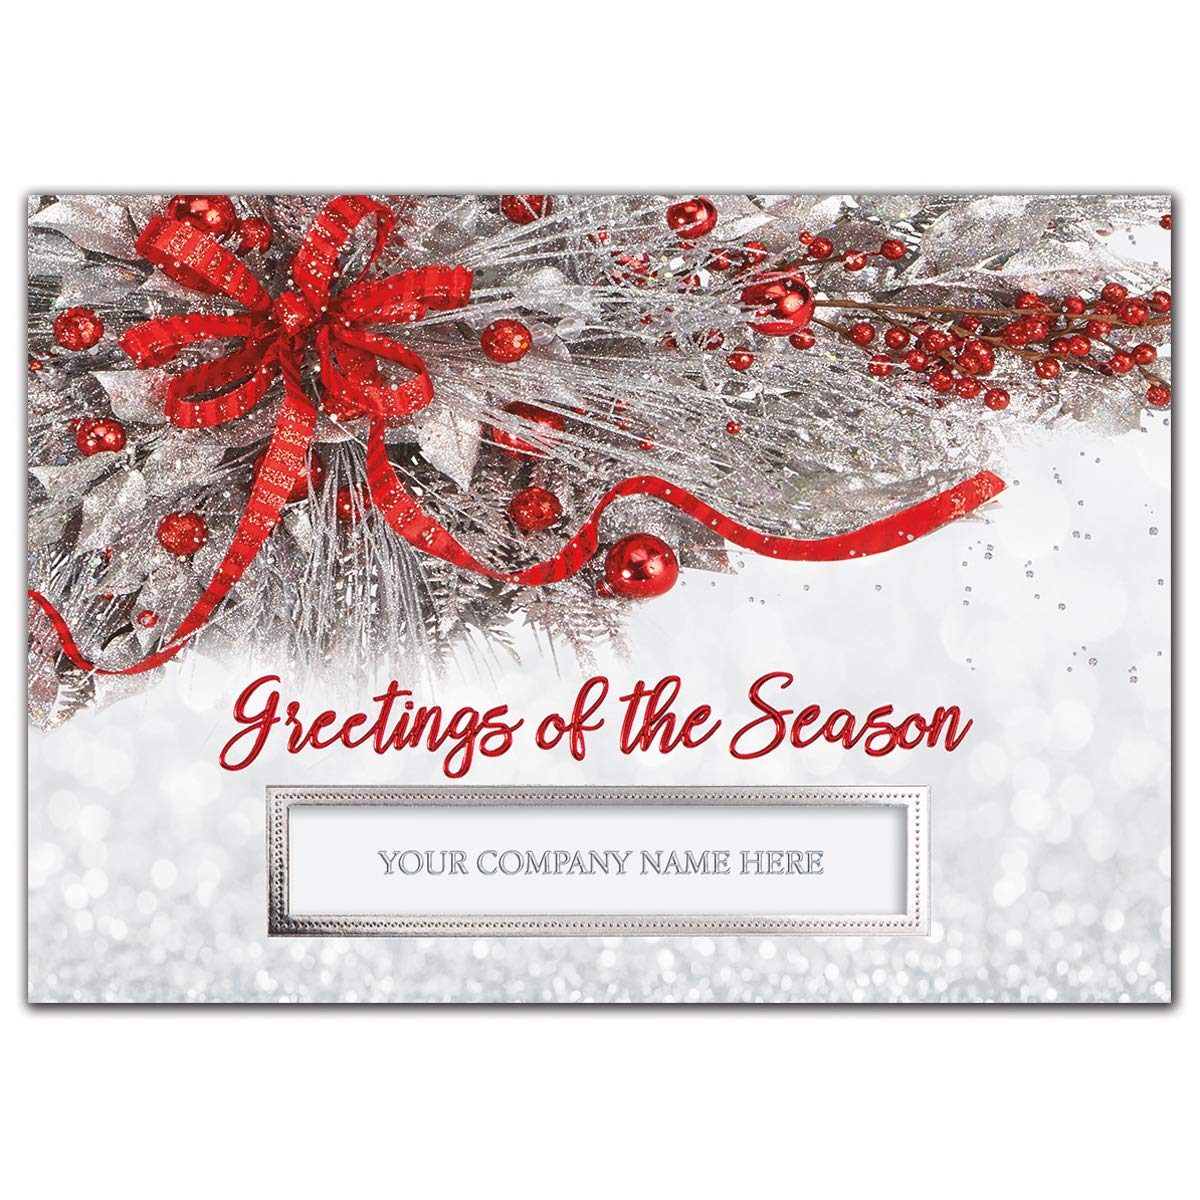 CheckSimple Custom - Silver Frost Business Holiday Cards (25 Custom Cards & Envelopes) by CheckSimple